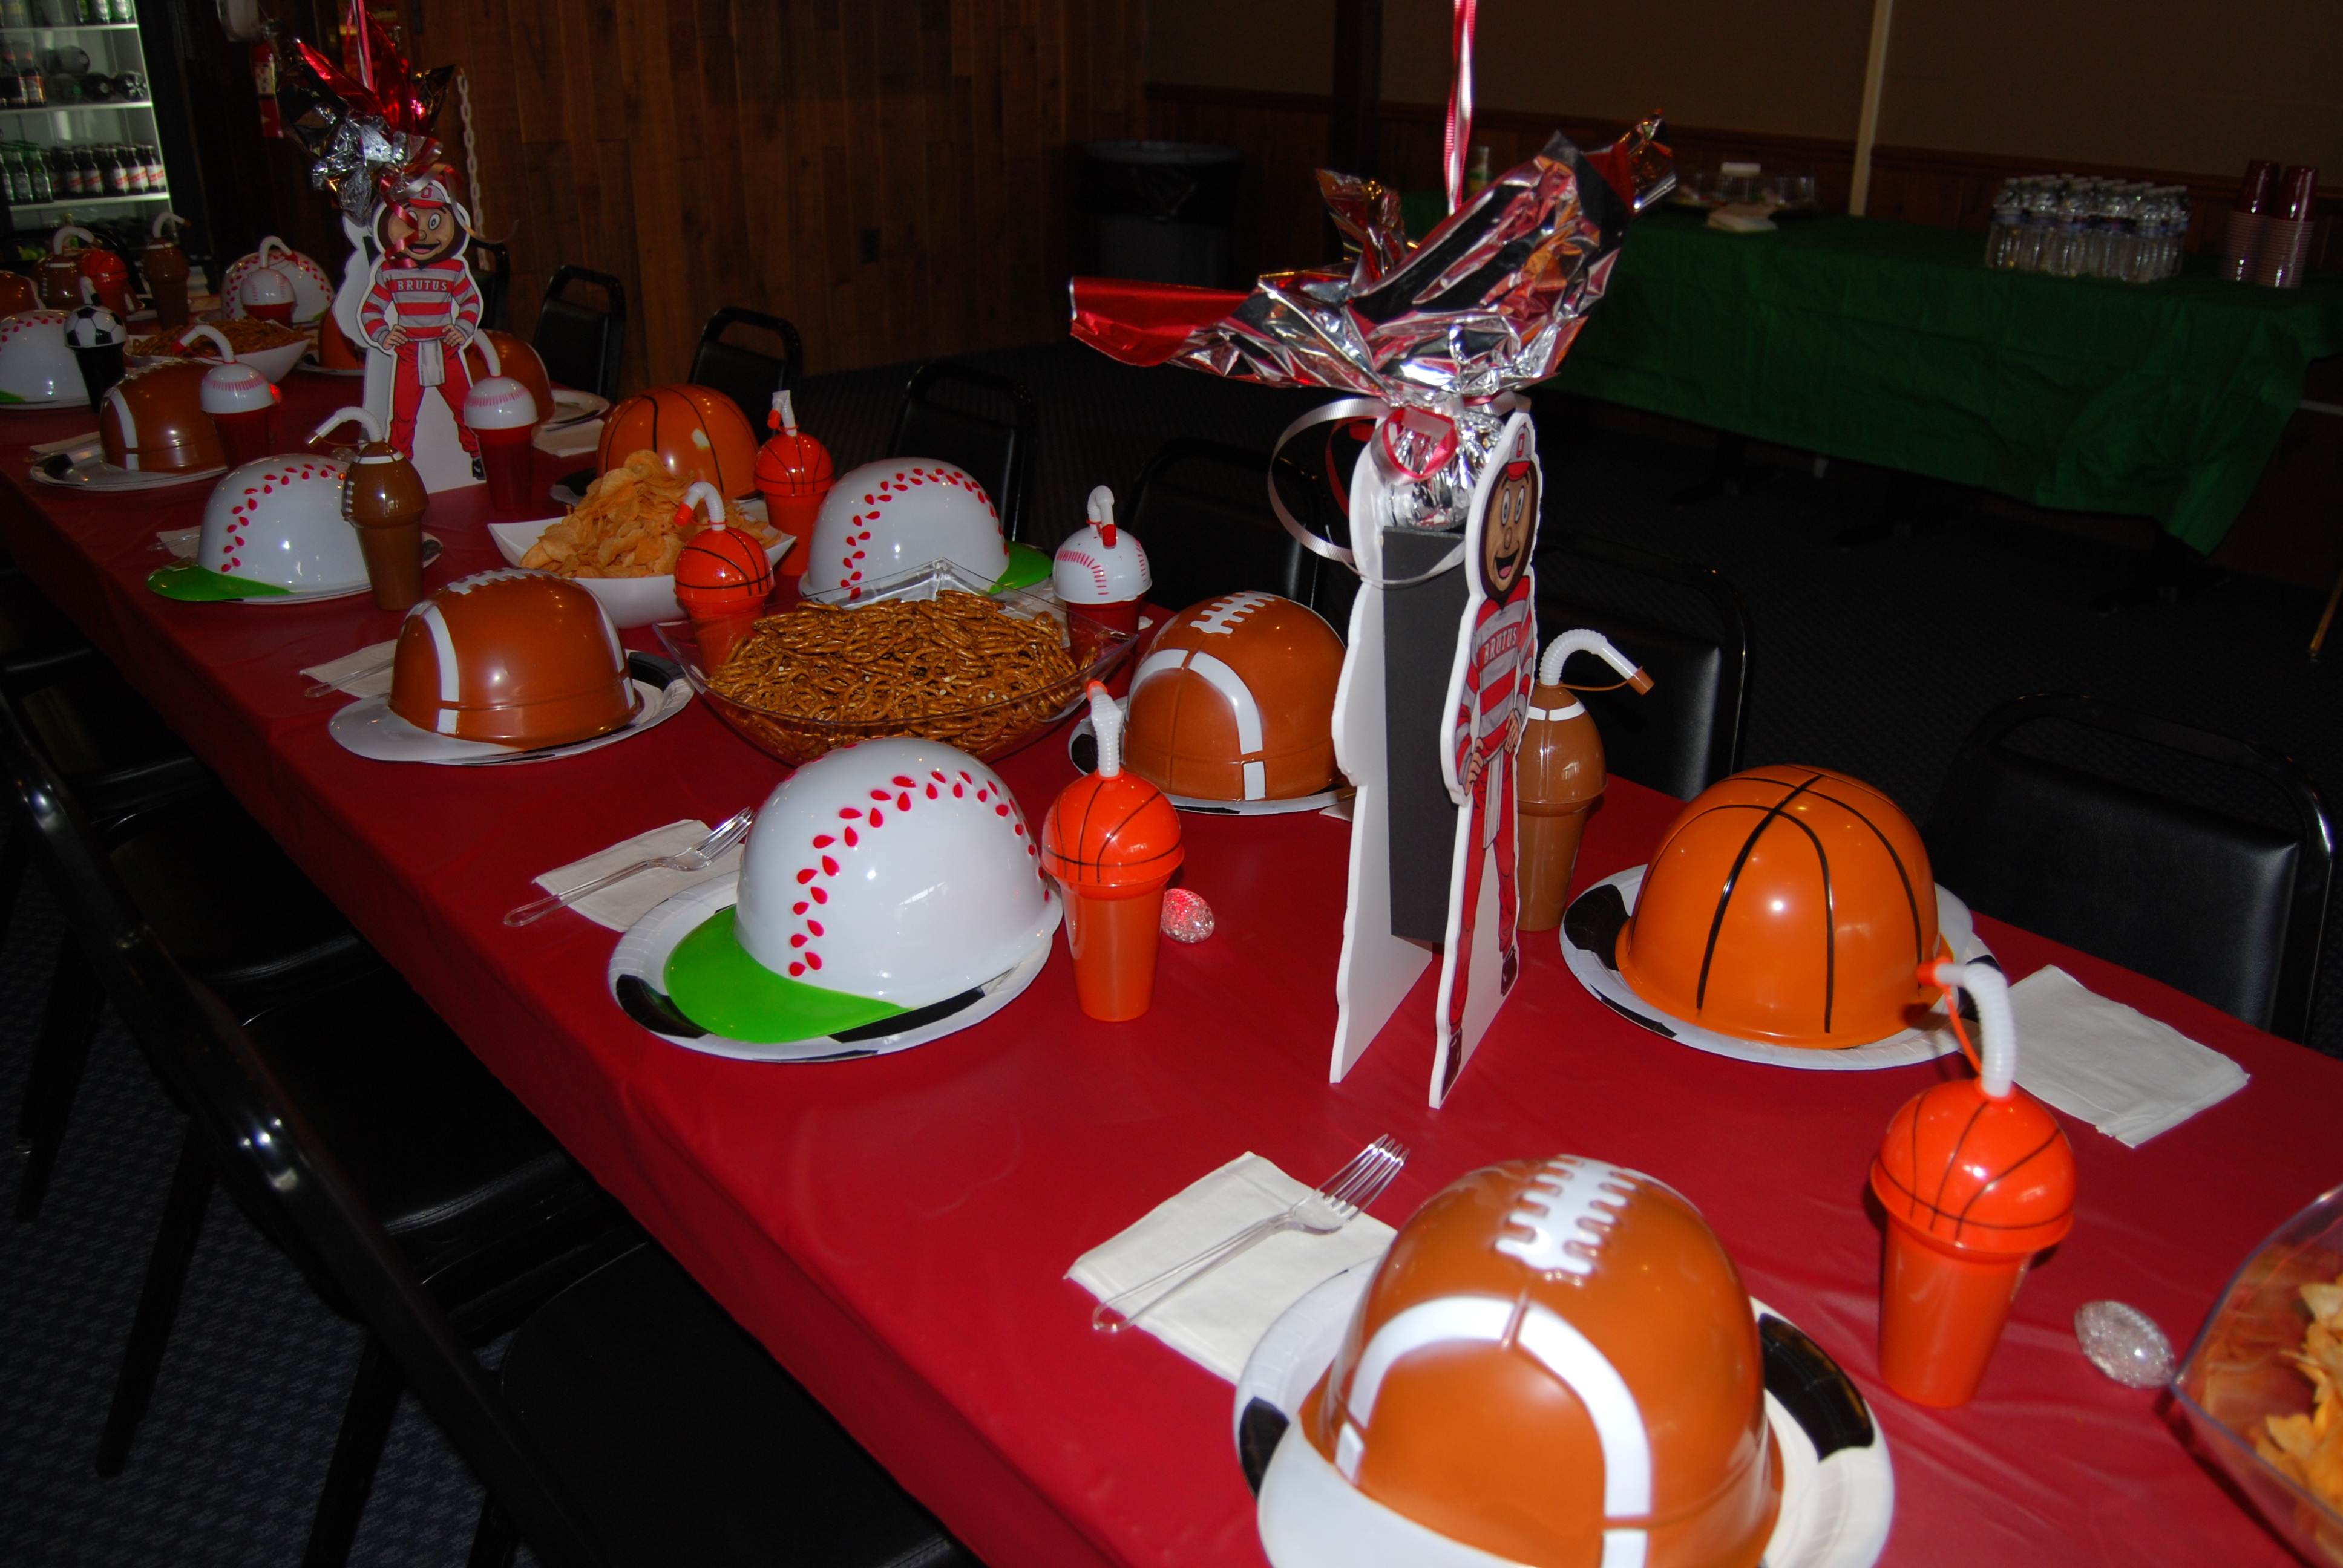 sports themed table centerpiece ideas blacktie photos dinner table centerpieces carried. Black Bedroom Furniture Sets. Home Design Ideas